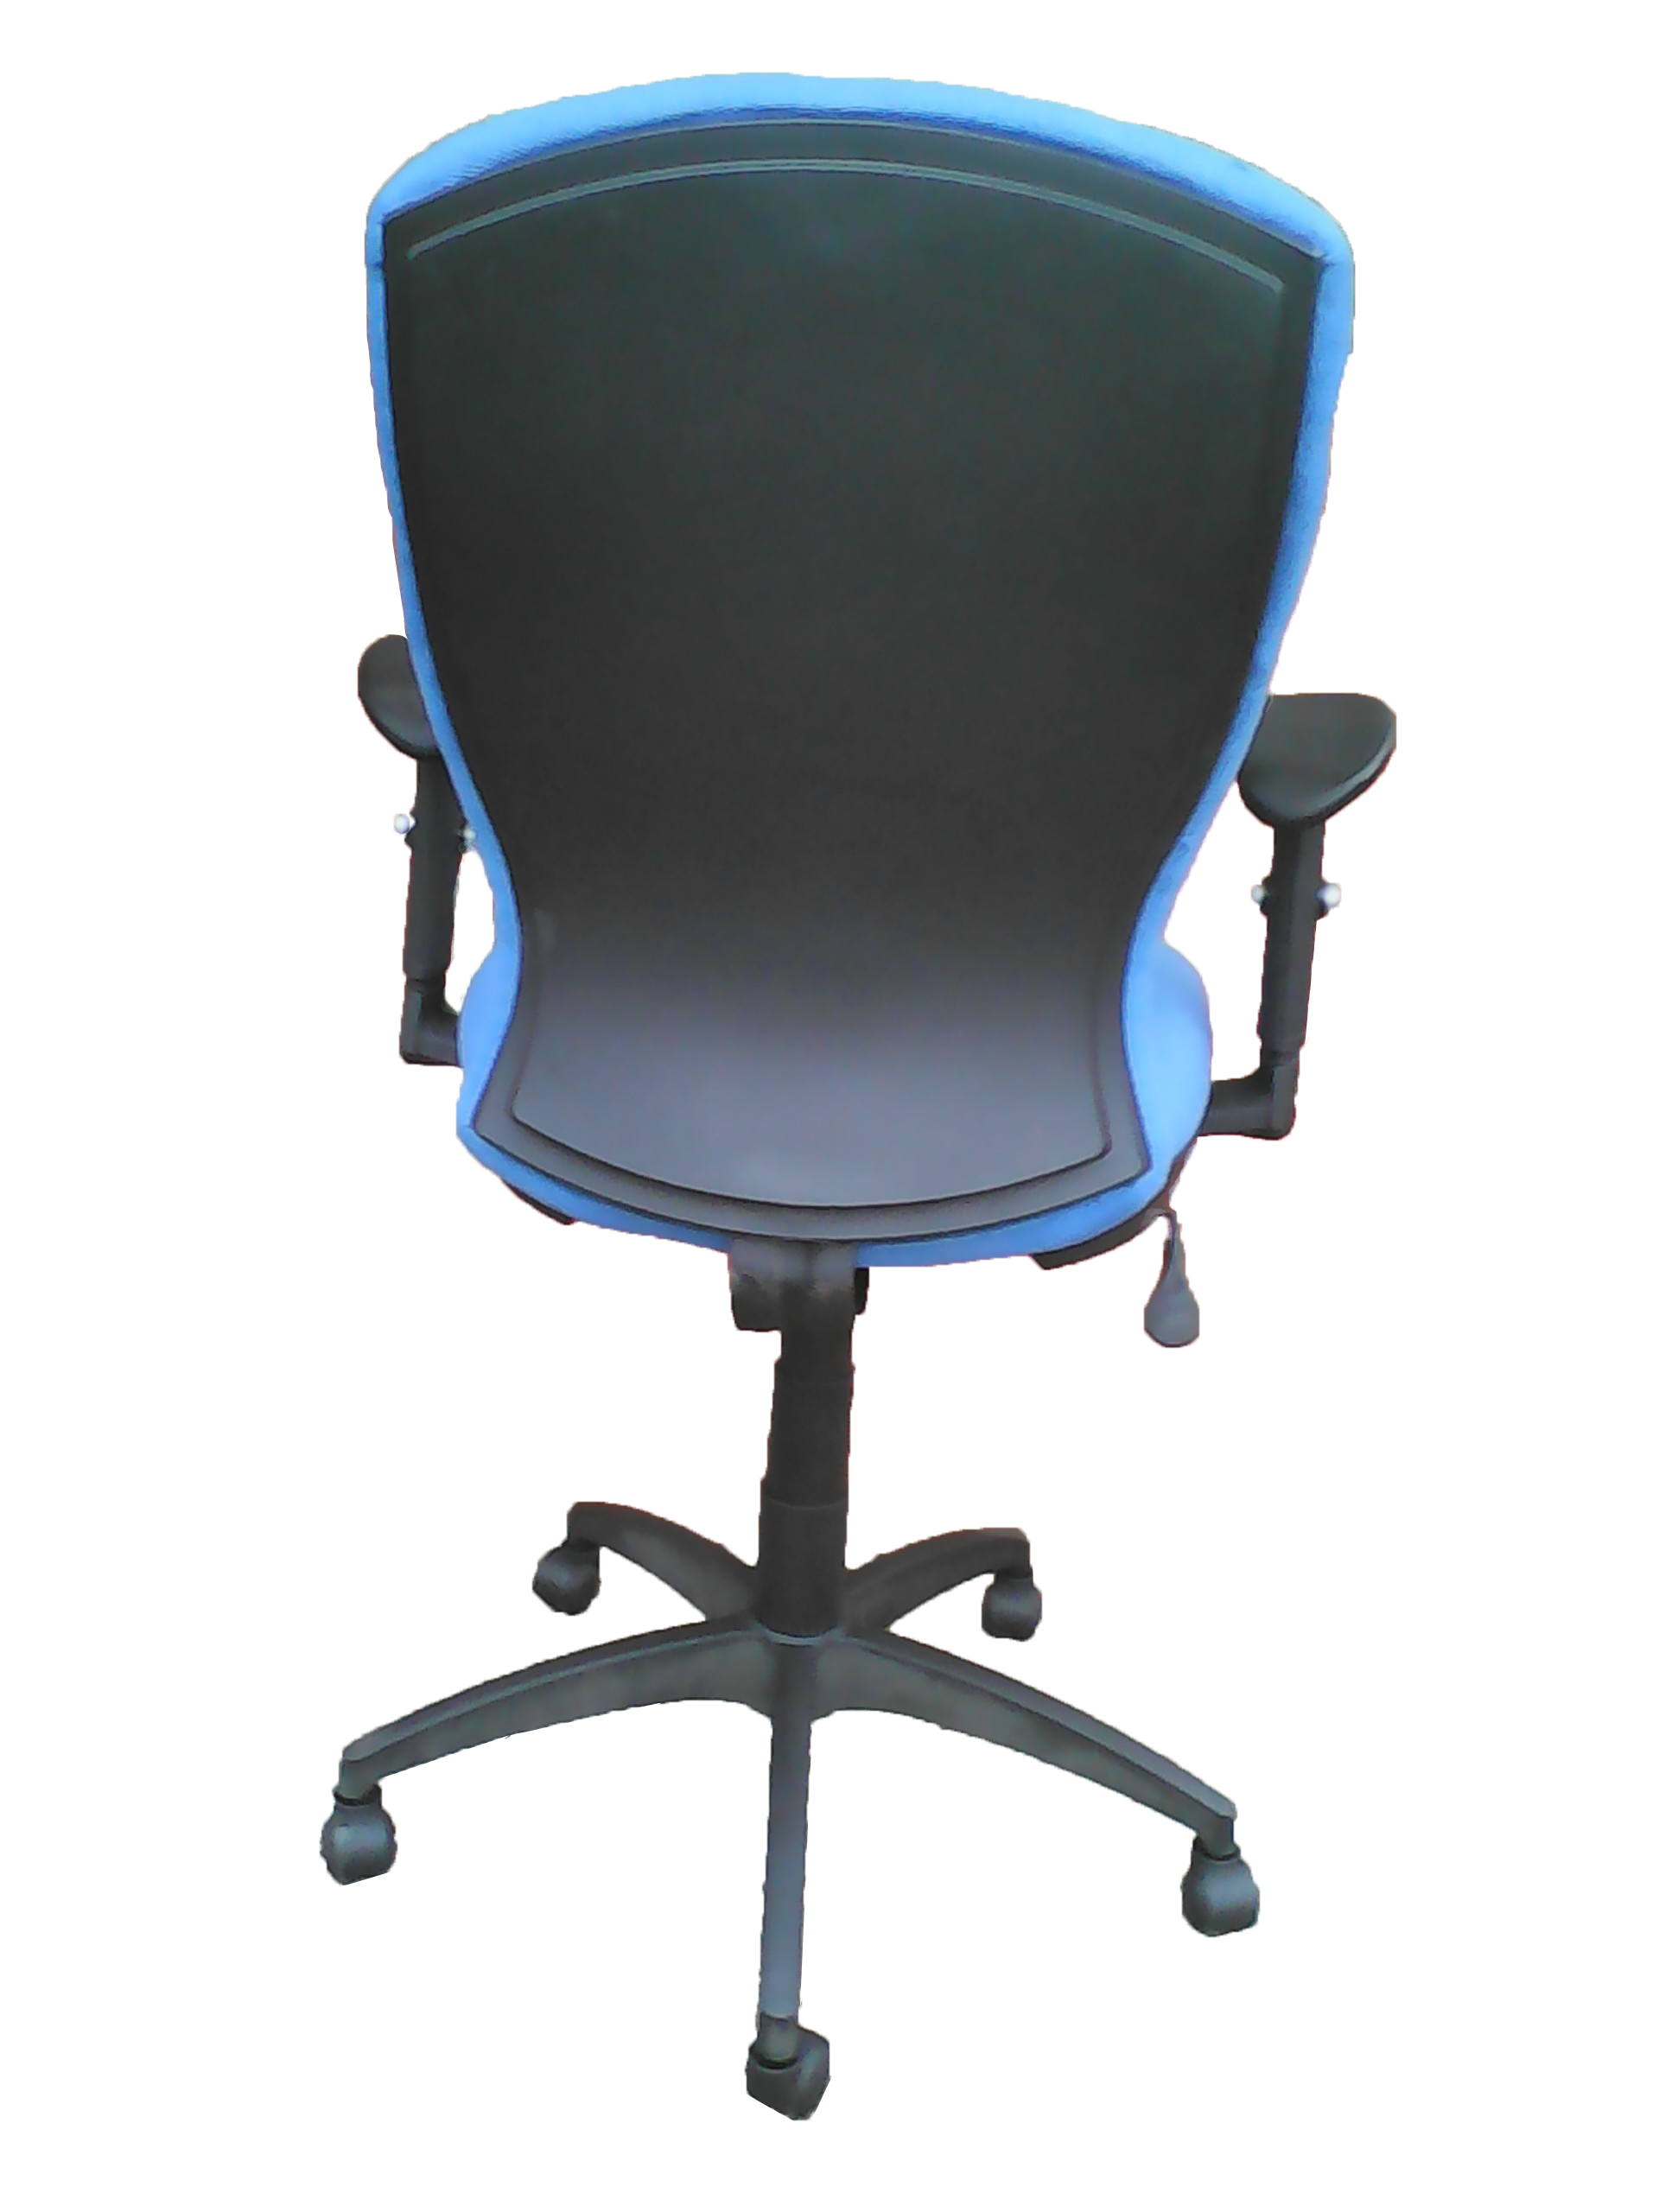 office chair back. A10021h-BLUE-computer-office-chair-BACK Office Chair Back A